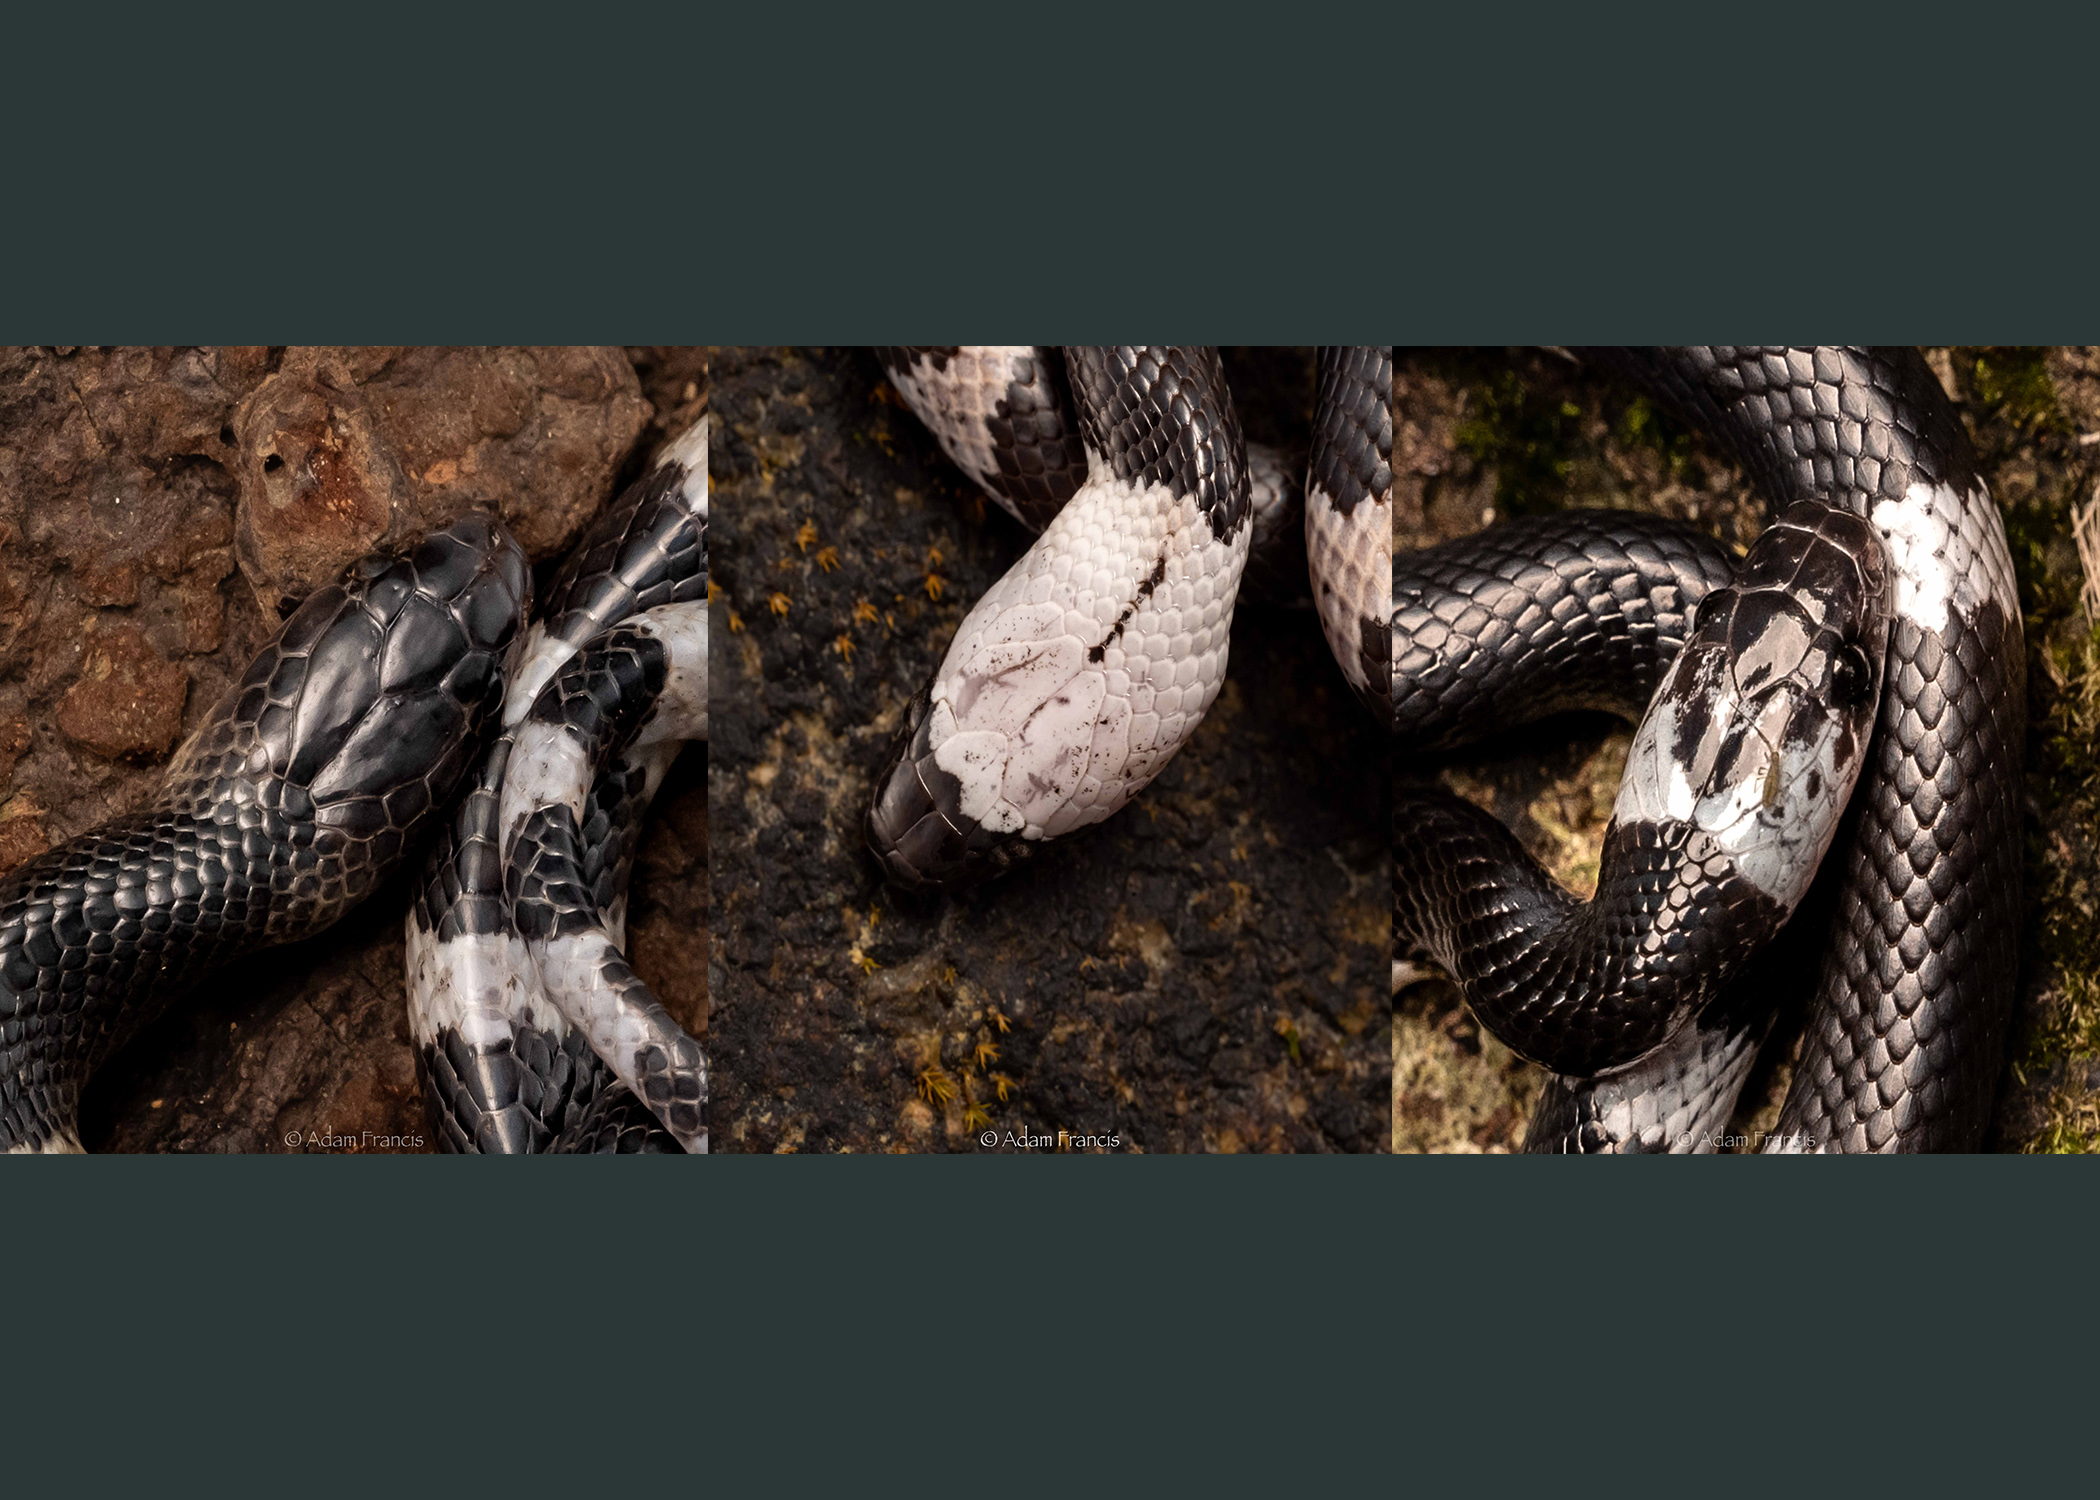 From left to right: Many Banded Krait, Futsing's Wolf Snake, Banded Wolf Snake